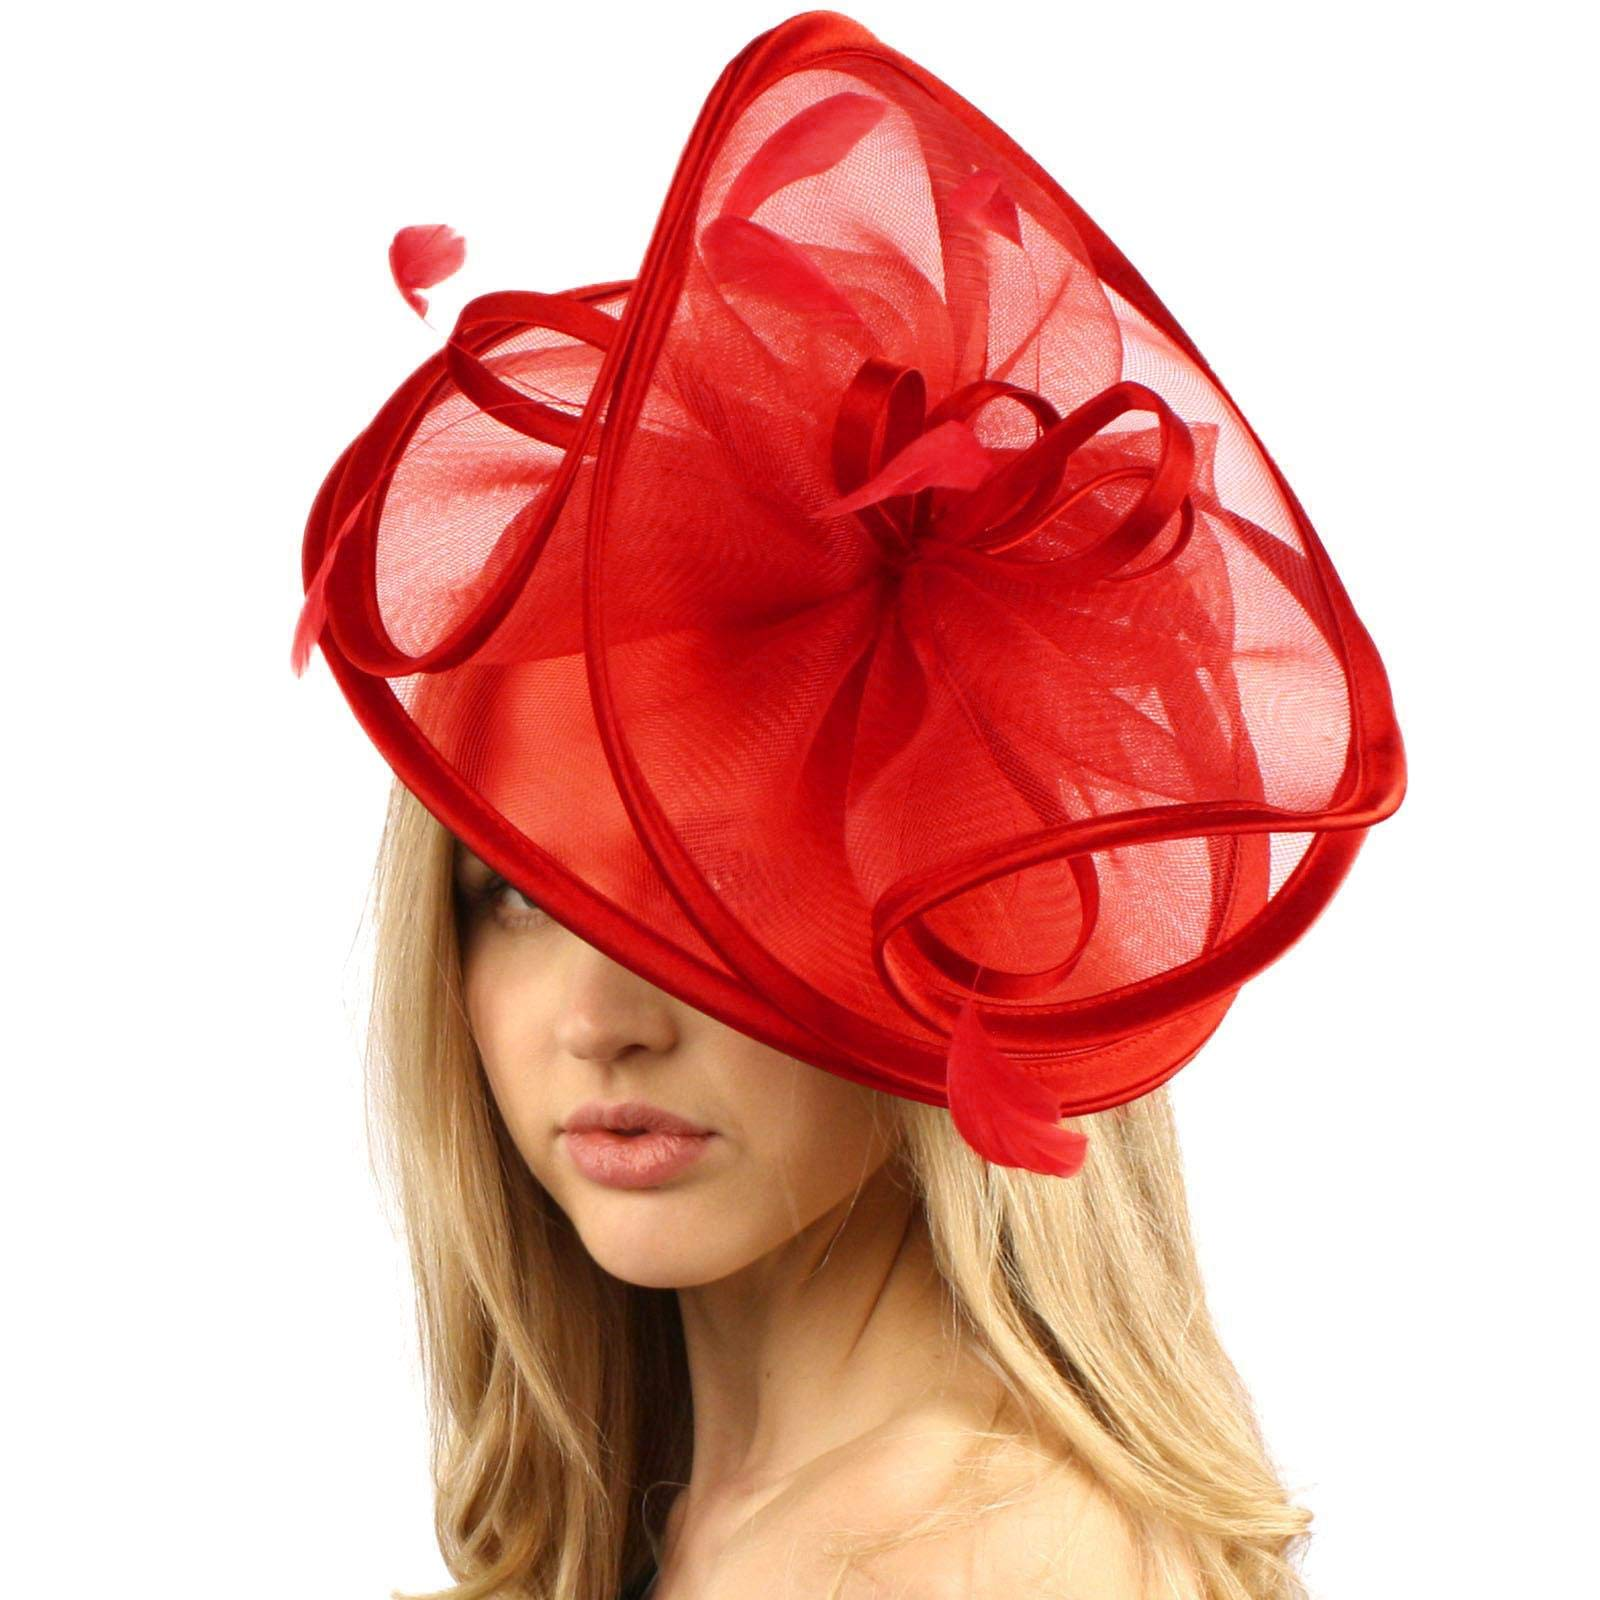 Feathers 3 Tier Layer 2 Tone Headband Fascinator Millinery Cocktail Hat Solid Red by SK Hat shop